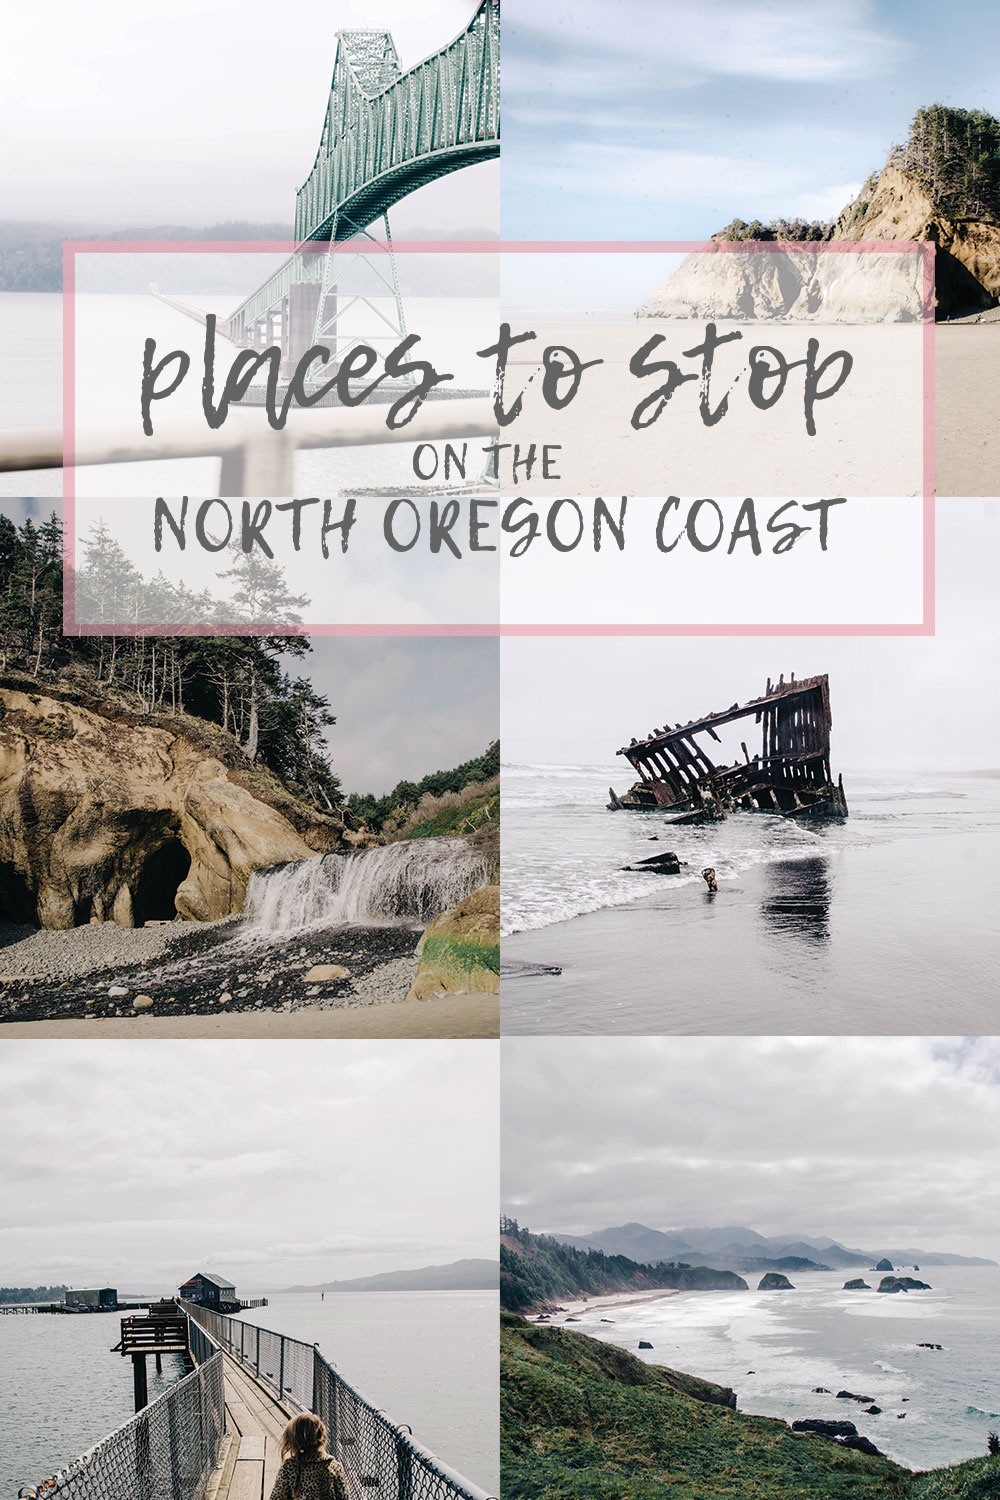 Top 8 Places to Stop on the North Oregon Coast